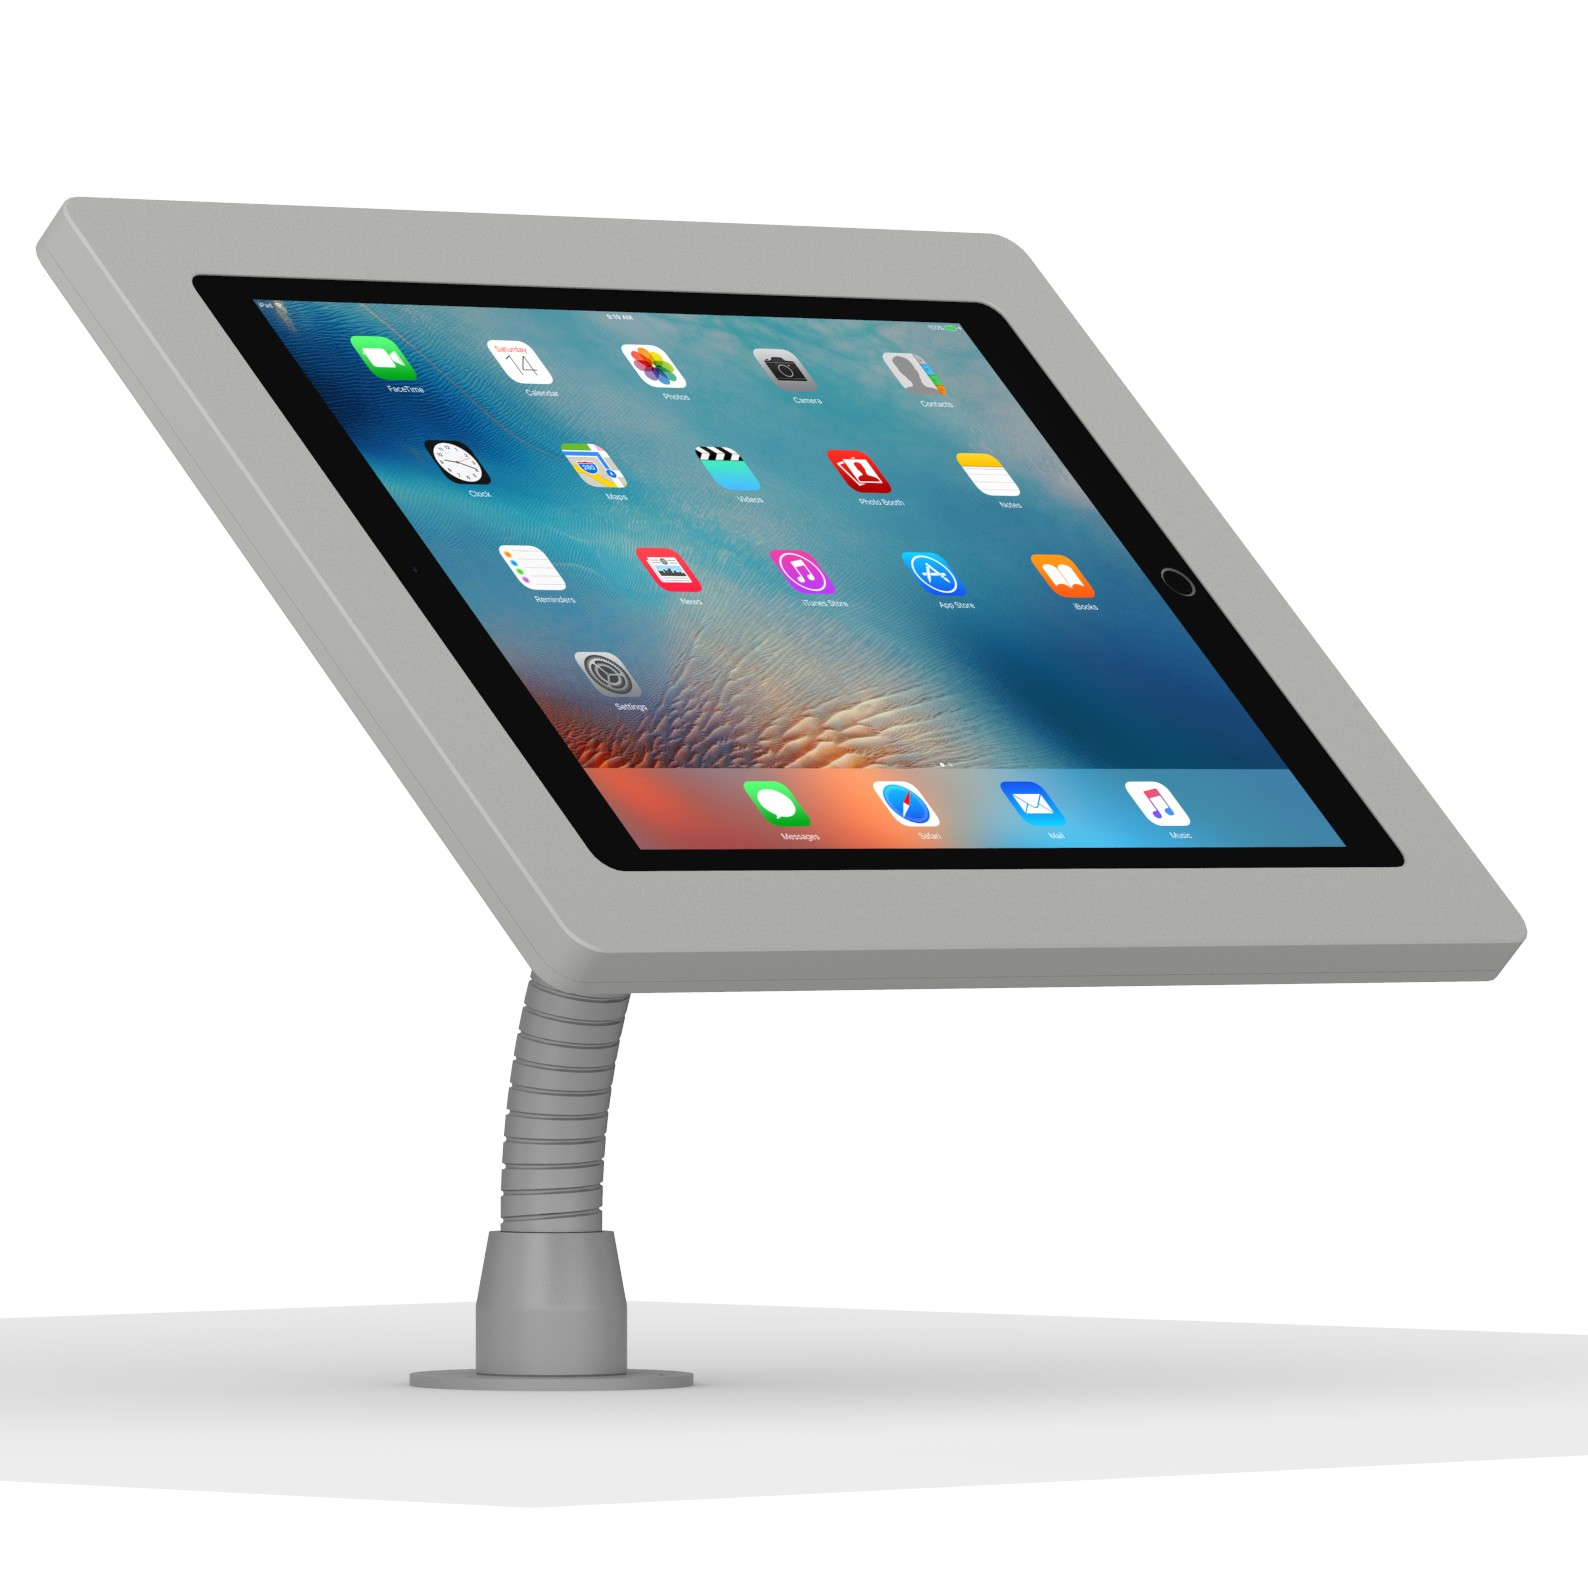 12 9 Inch Ipad Pro Light Grey Enclosure W Flexible Desk